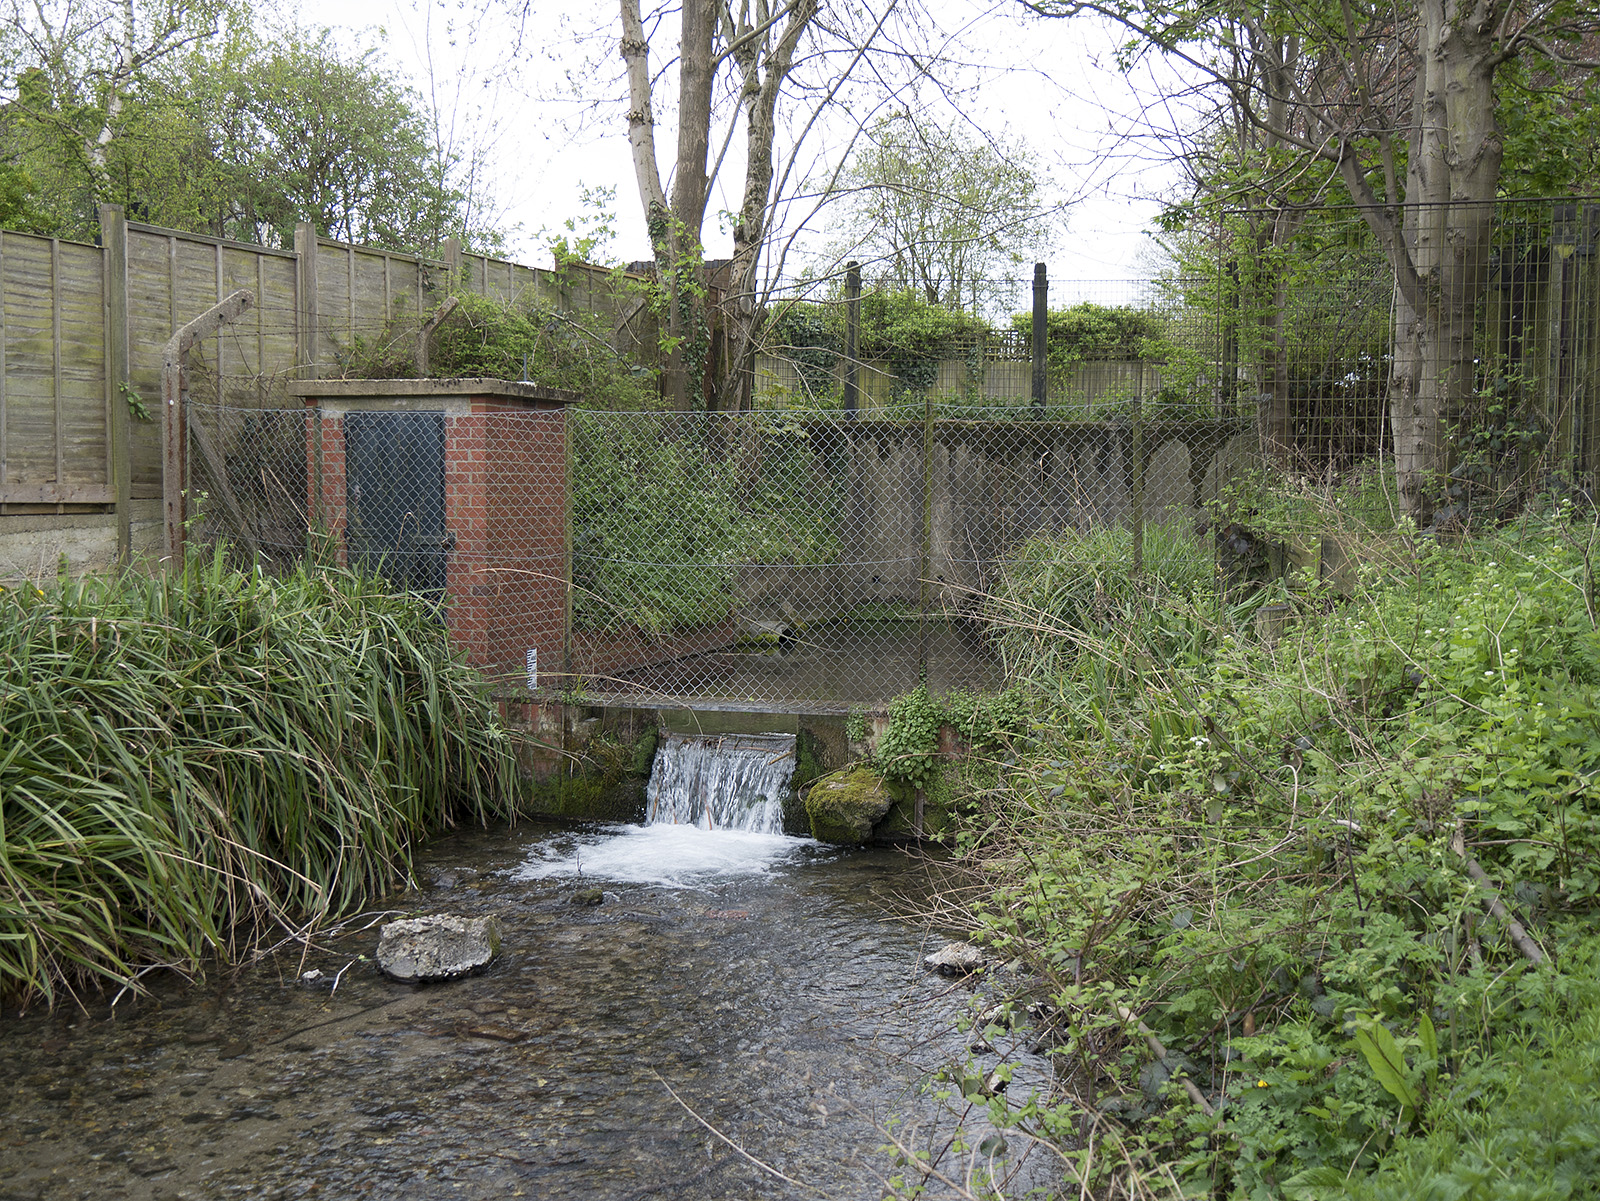 No entry - small fenced in culvert